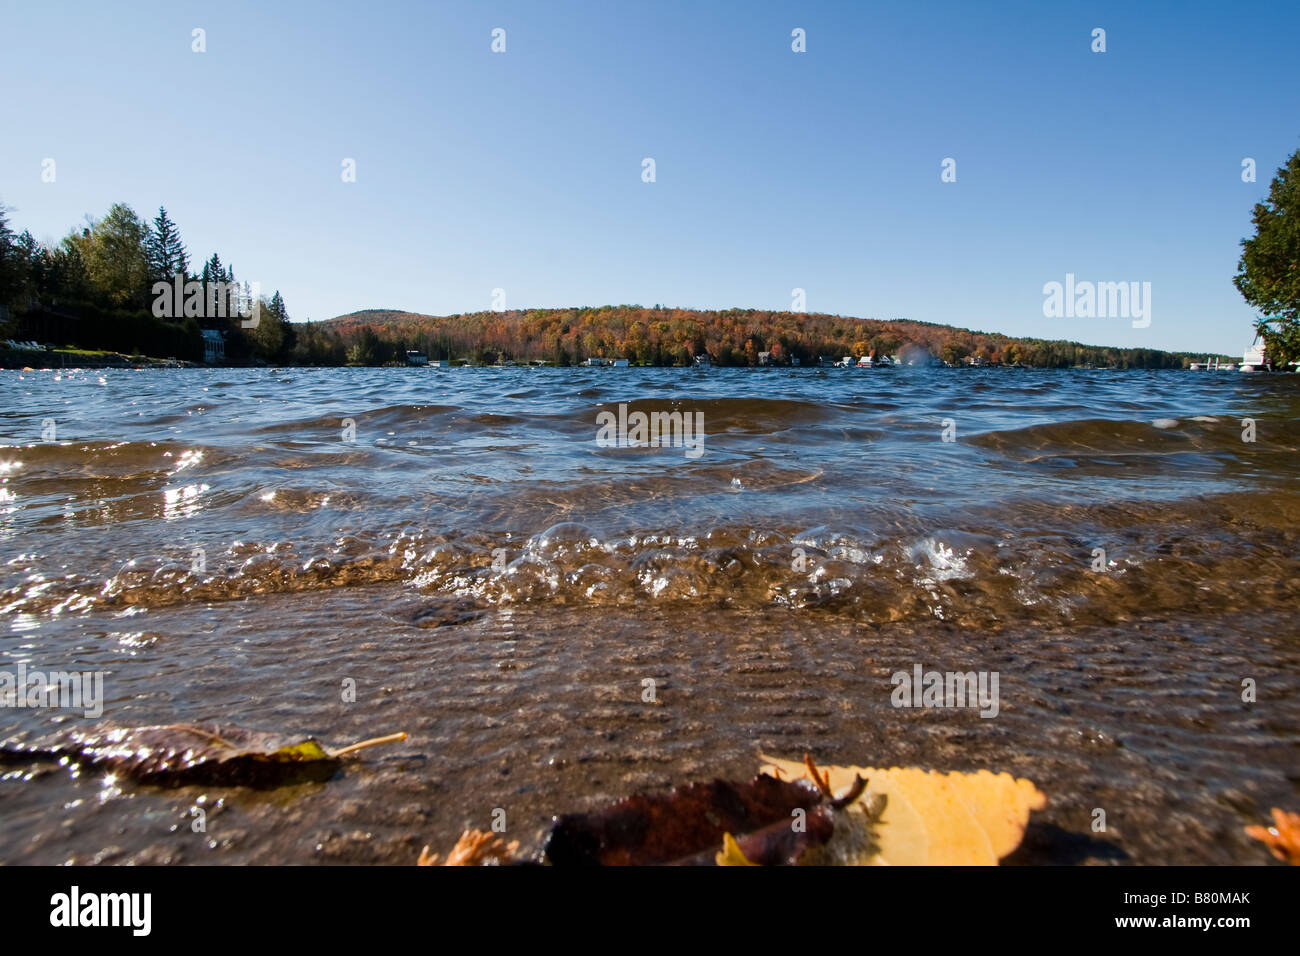 Water ripples lapping up on a shore October 7 2008 - Stock Image